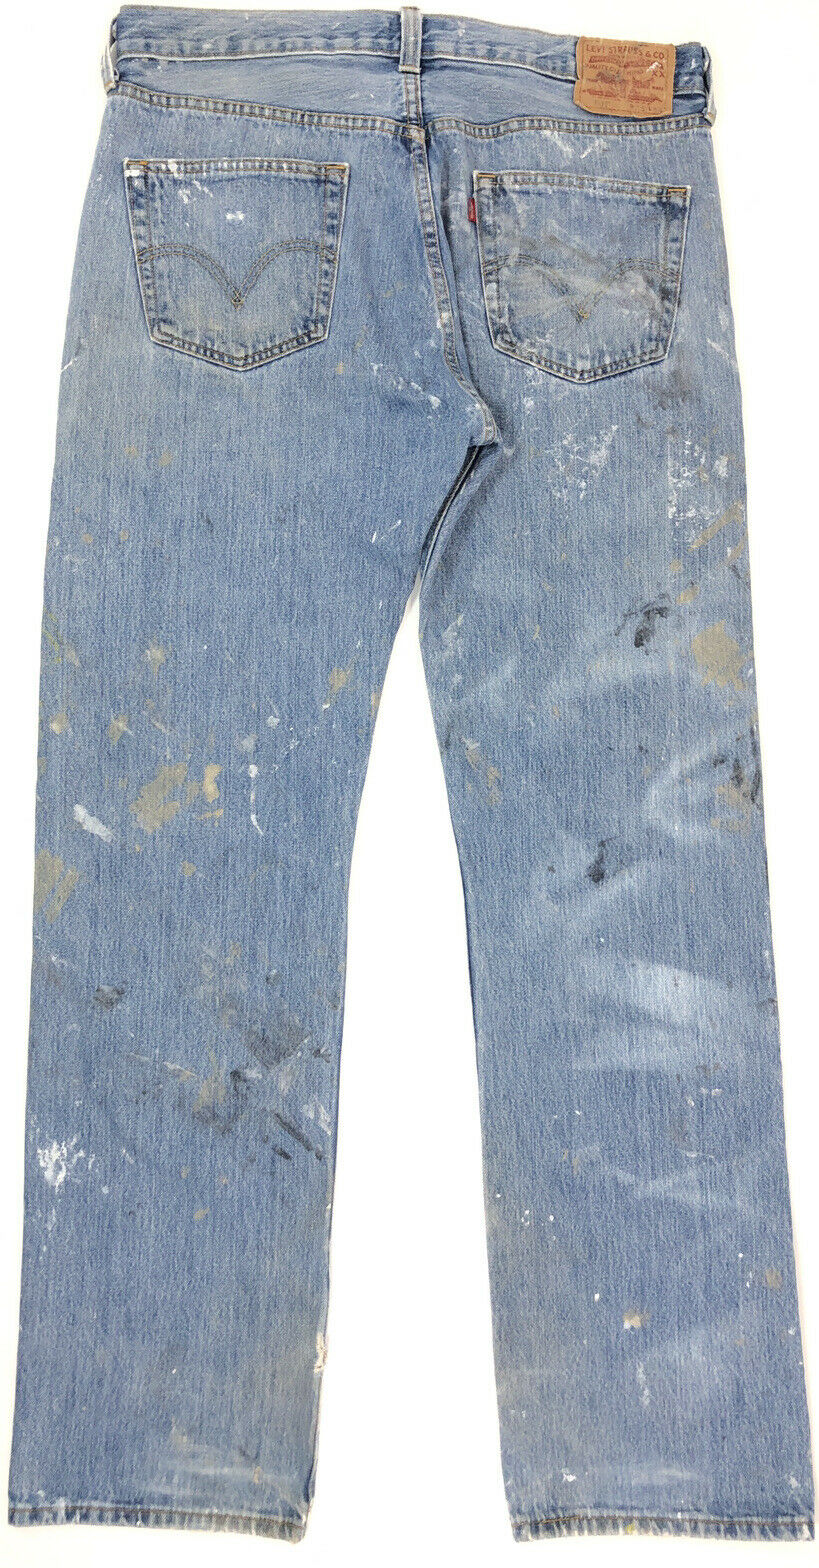 vtg 90s LEVI'S 501 Faded Work Worn Button Fly Jea… - image 3